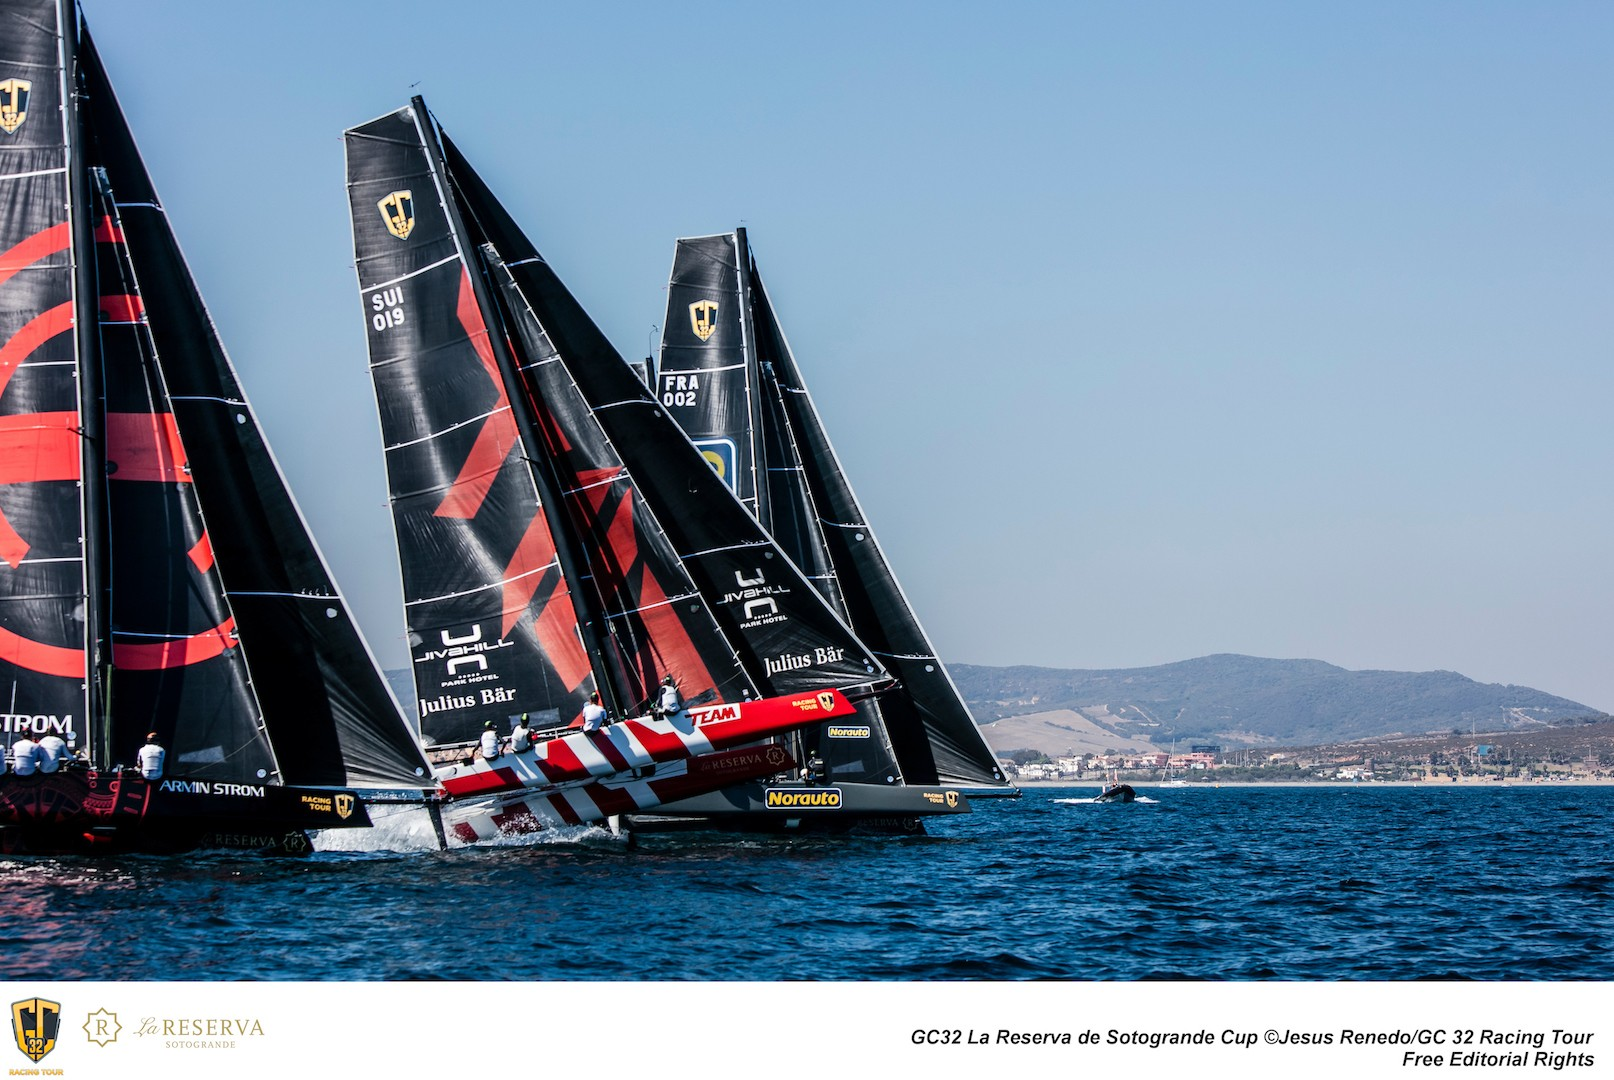 Team Tilt on the edge of control in the GC32